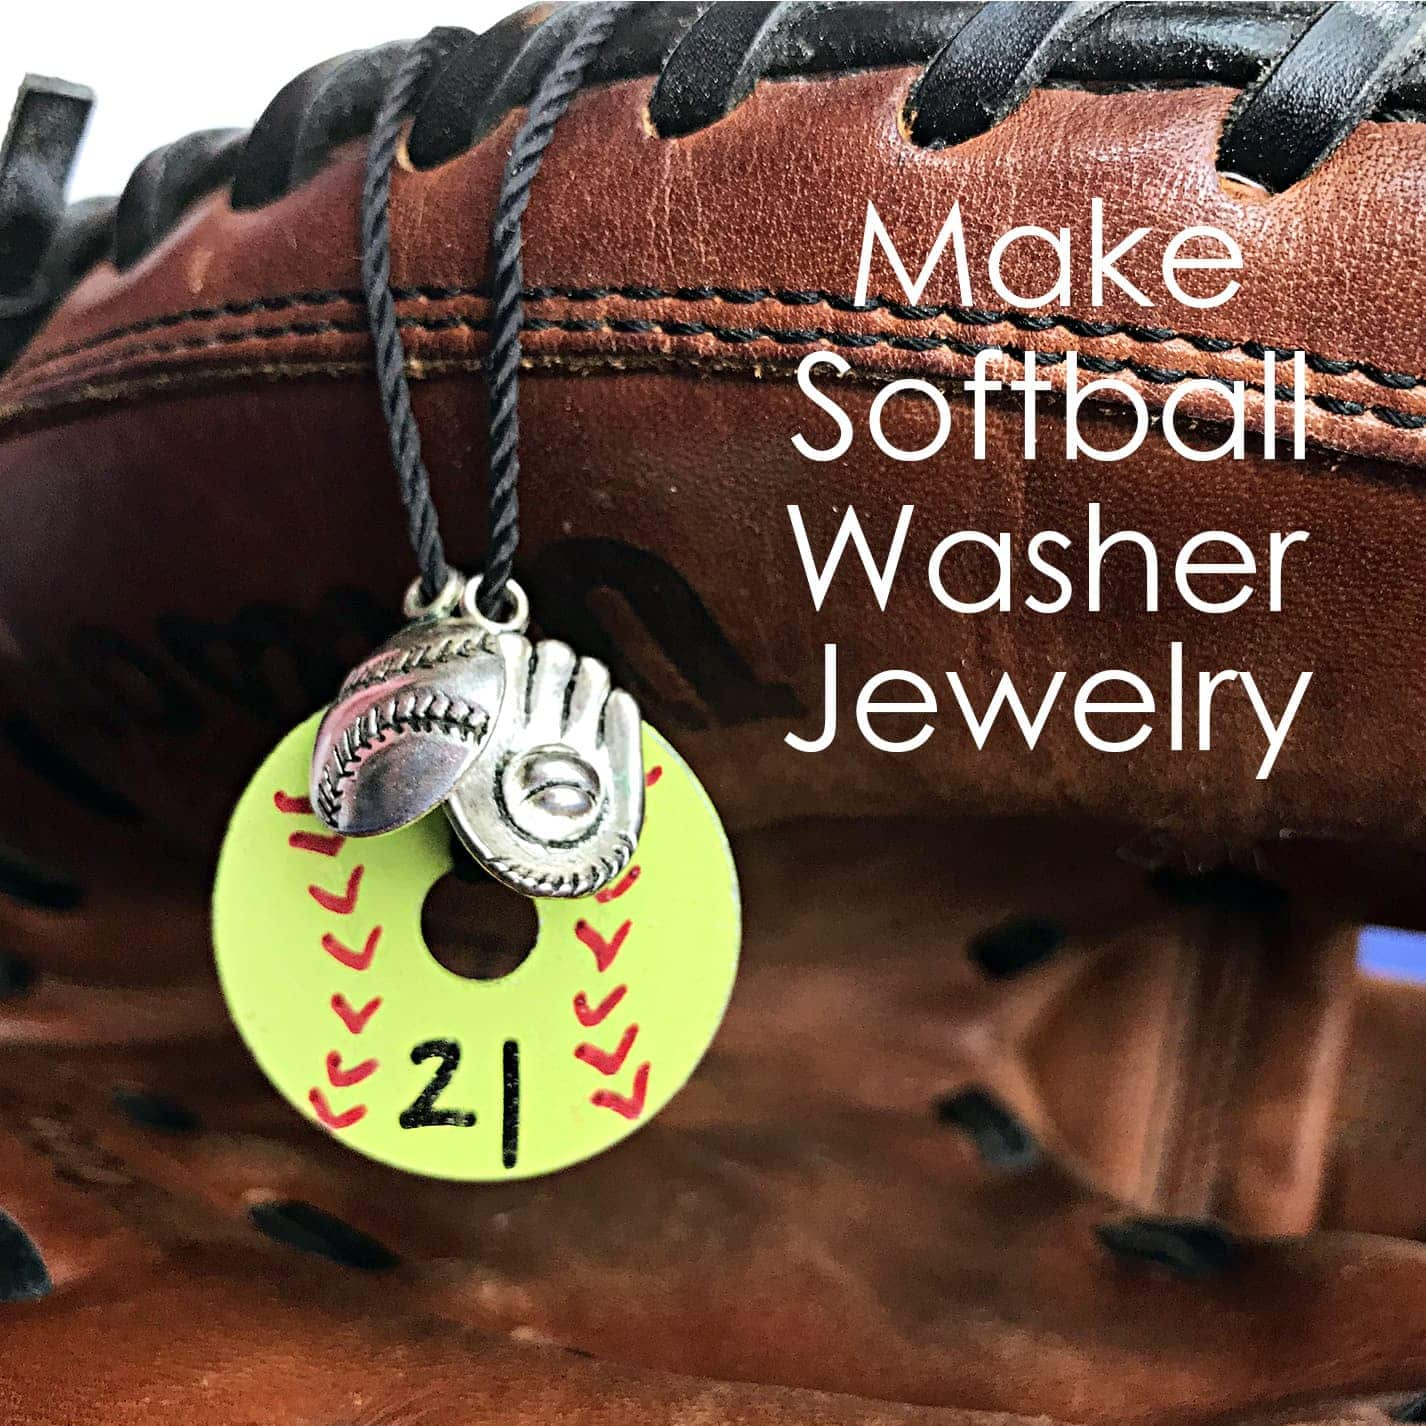 Softball Necklace made from washer hanging from softball glove.